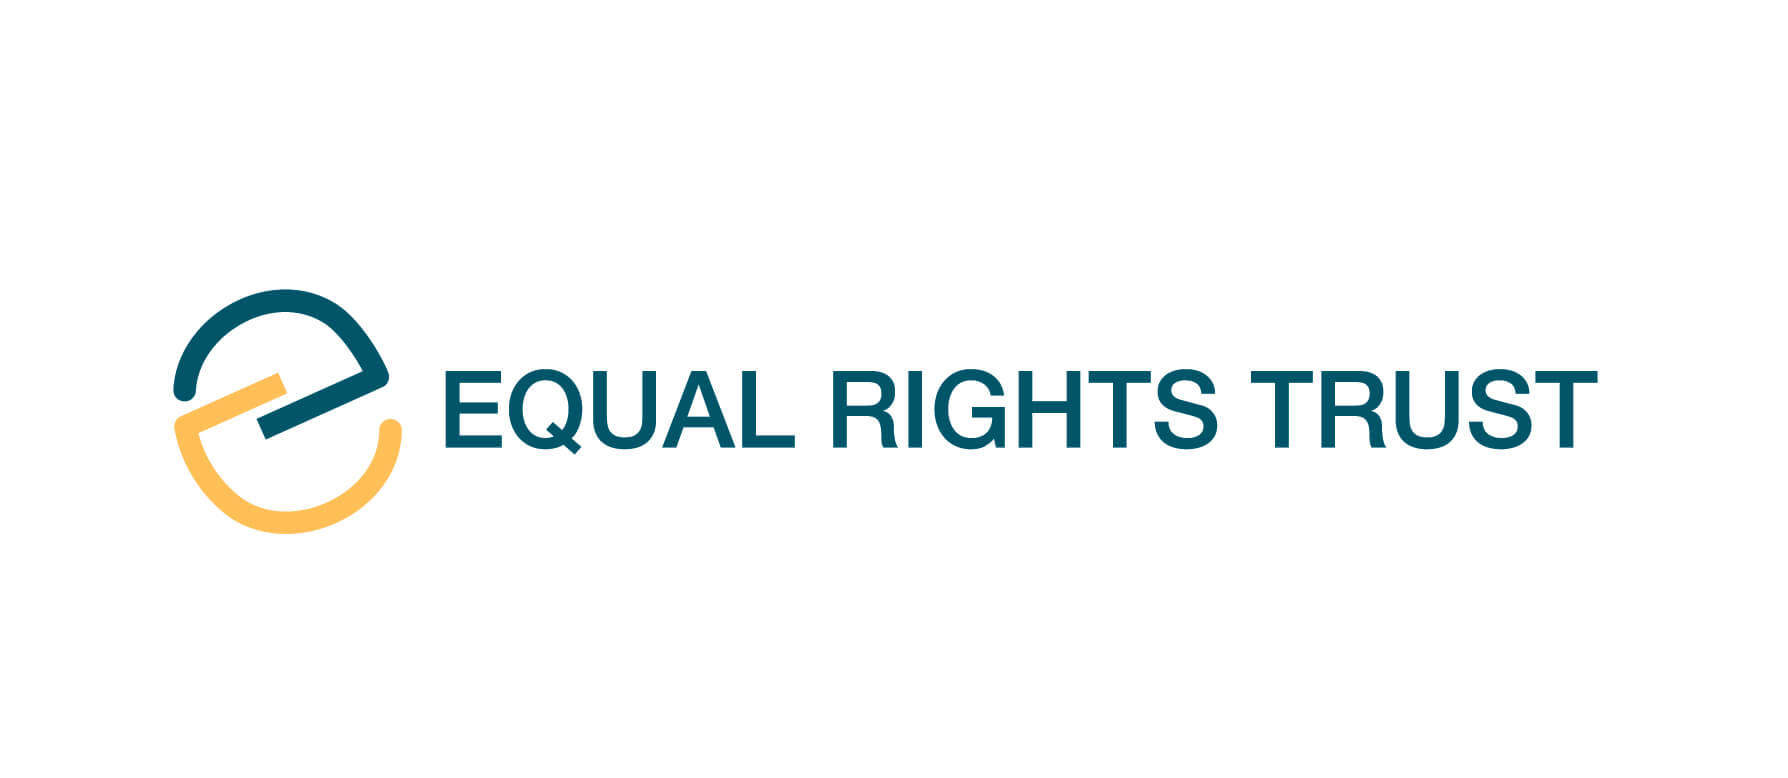 Campaign promotes equal opportunity for people beginning a career in equality and human rights